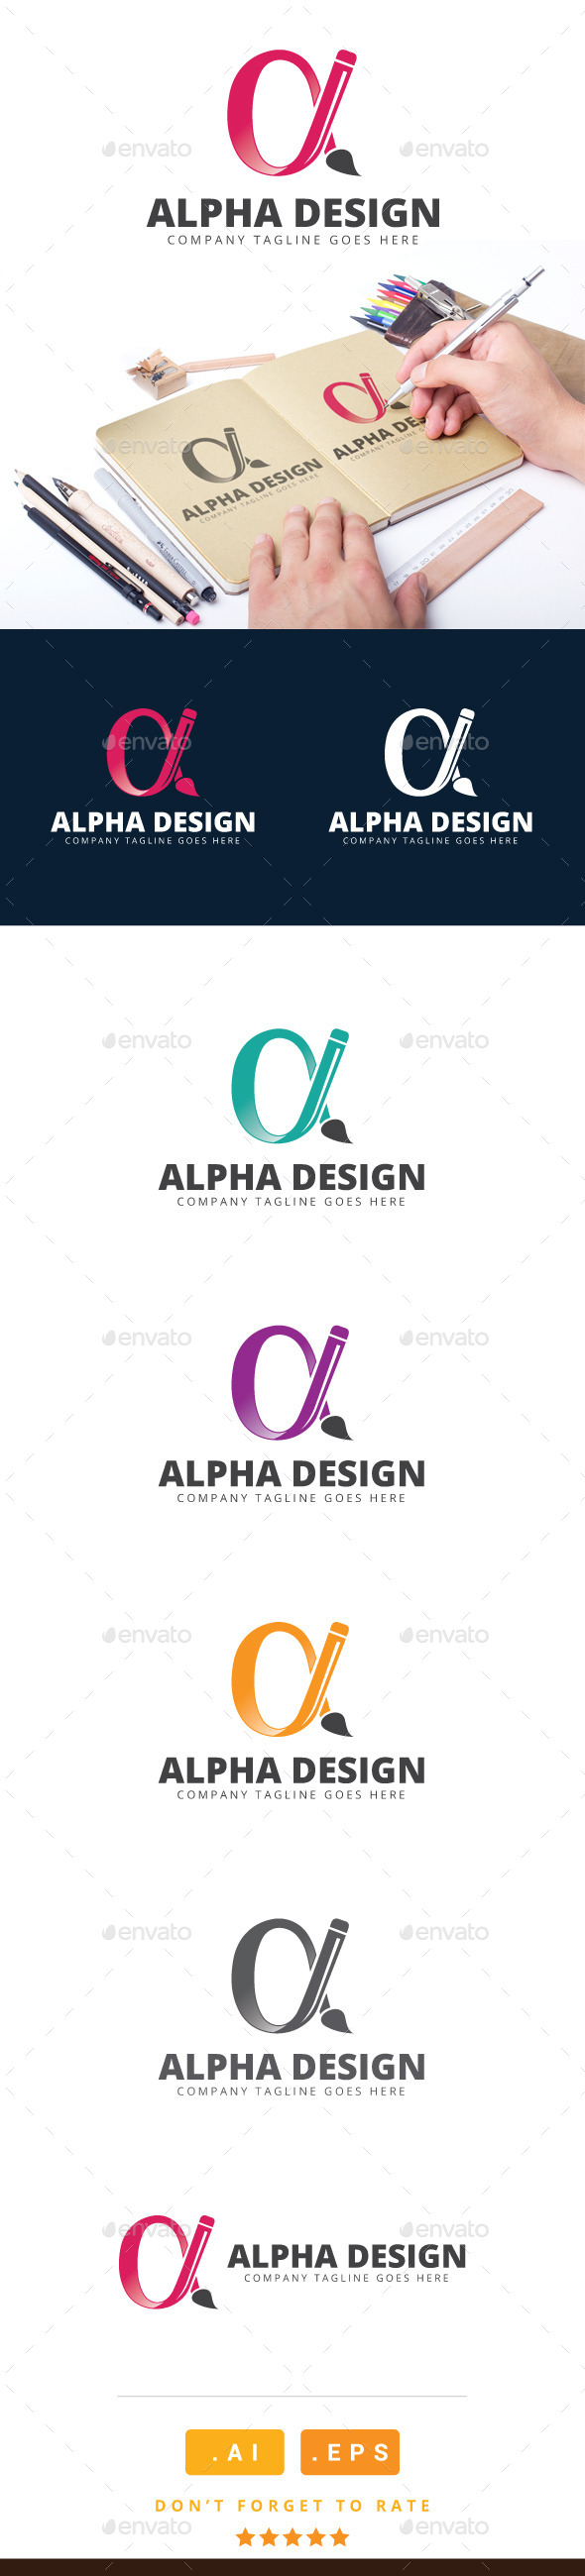 GraphicRiver Alpha Design Logo 11115709